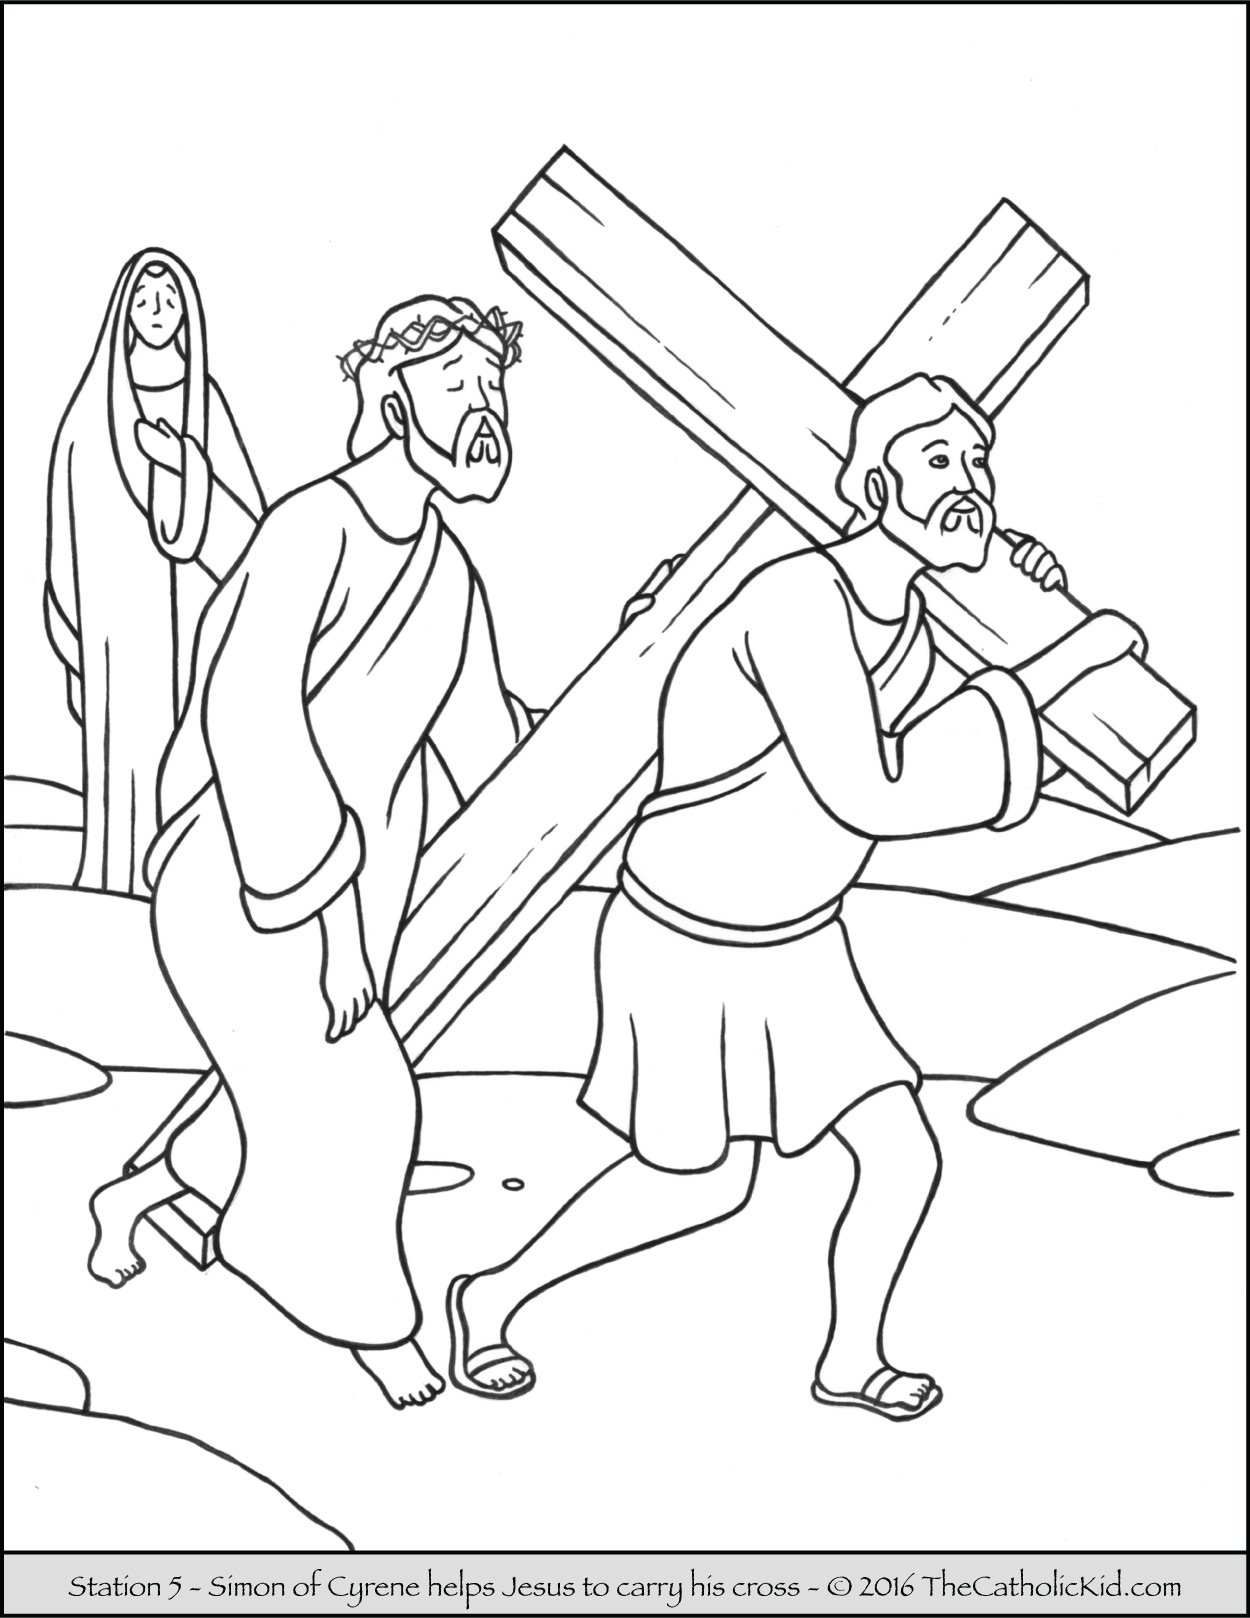 stations of the cross coloring pages 5 simon of cyrene helps jesus to carry his